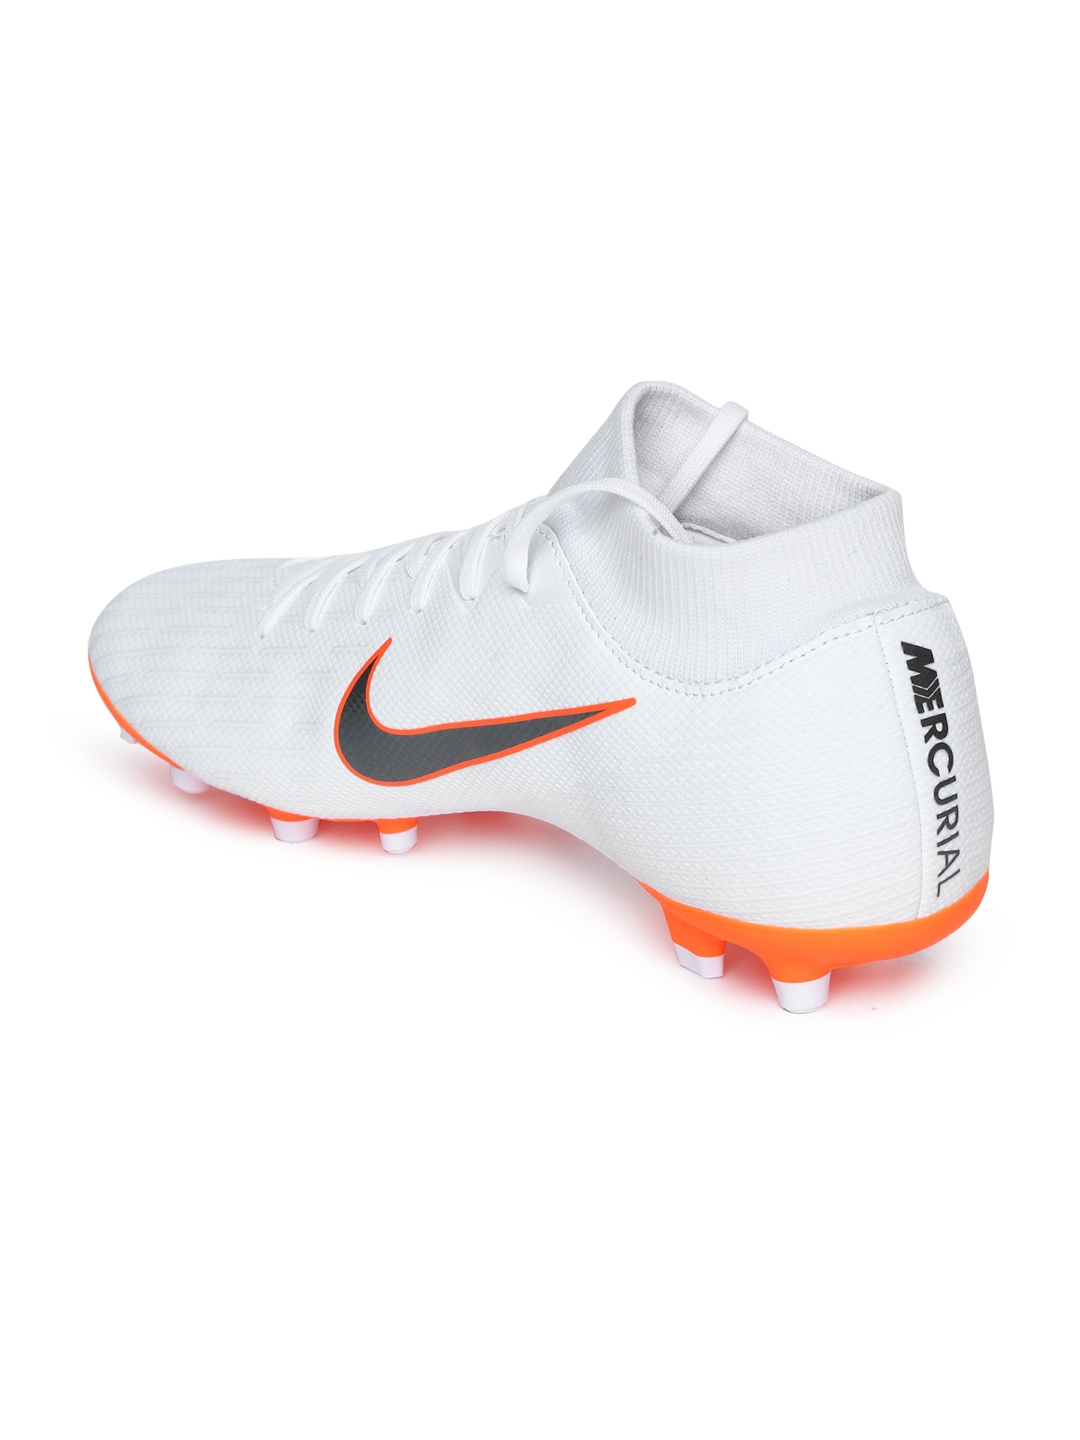 60e6118e8dda Buy Nike Men White SUPERFLY 6 ACADEMY Football Shoes - Sports Shoes ...